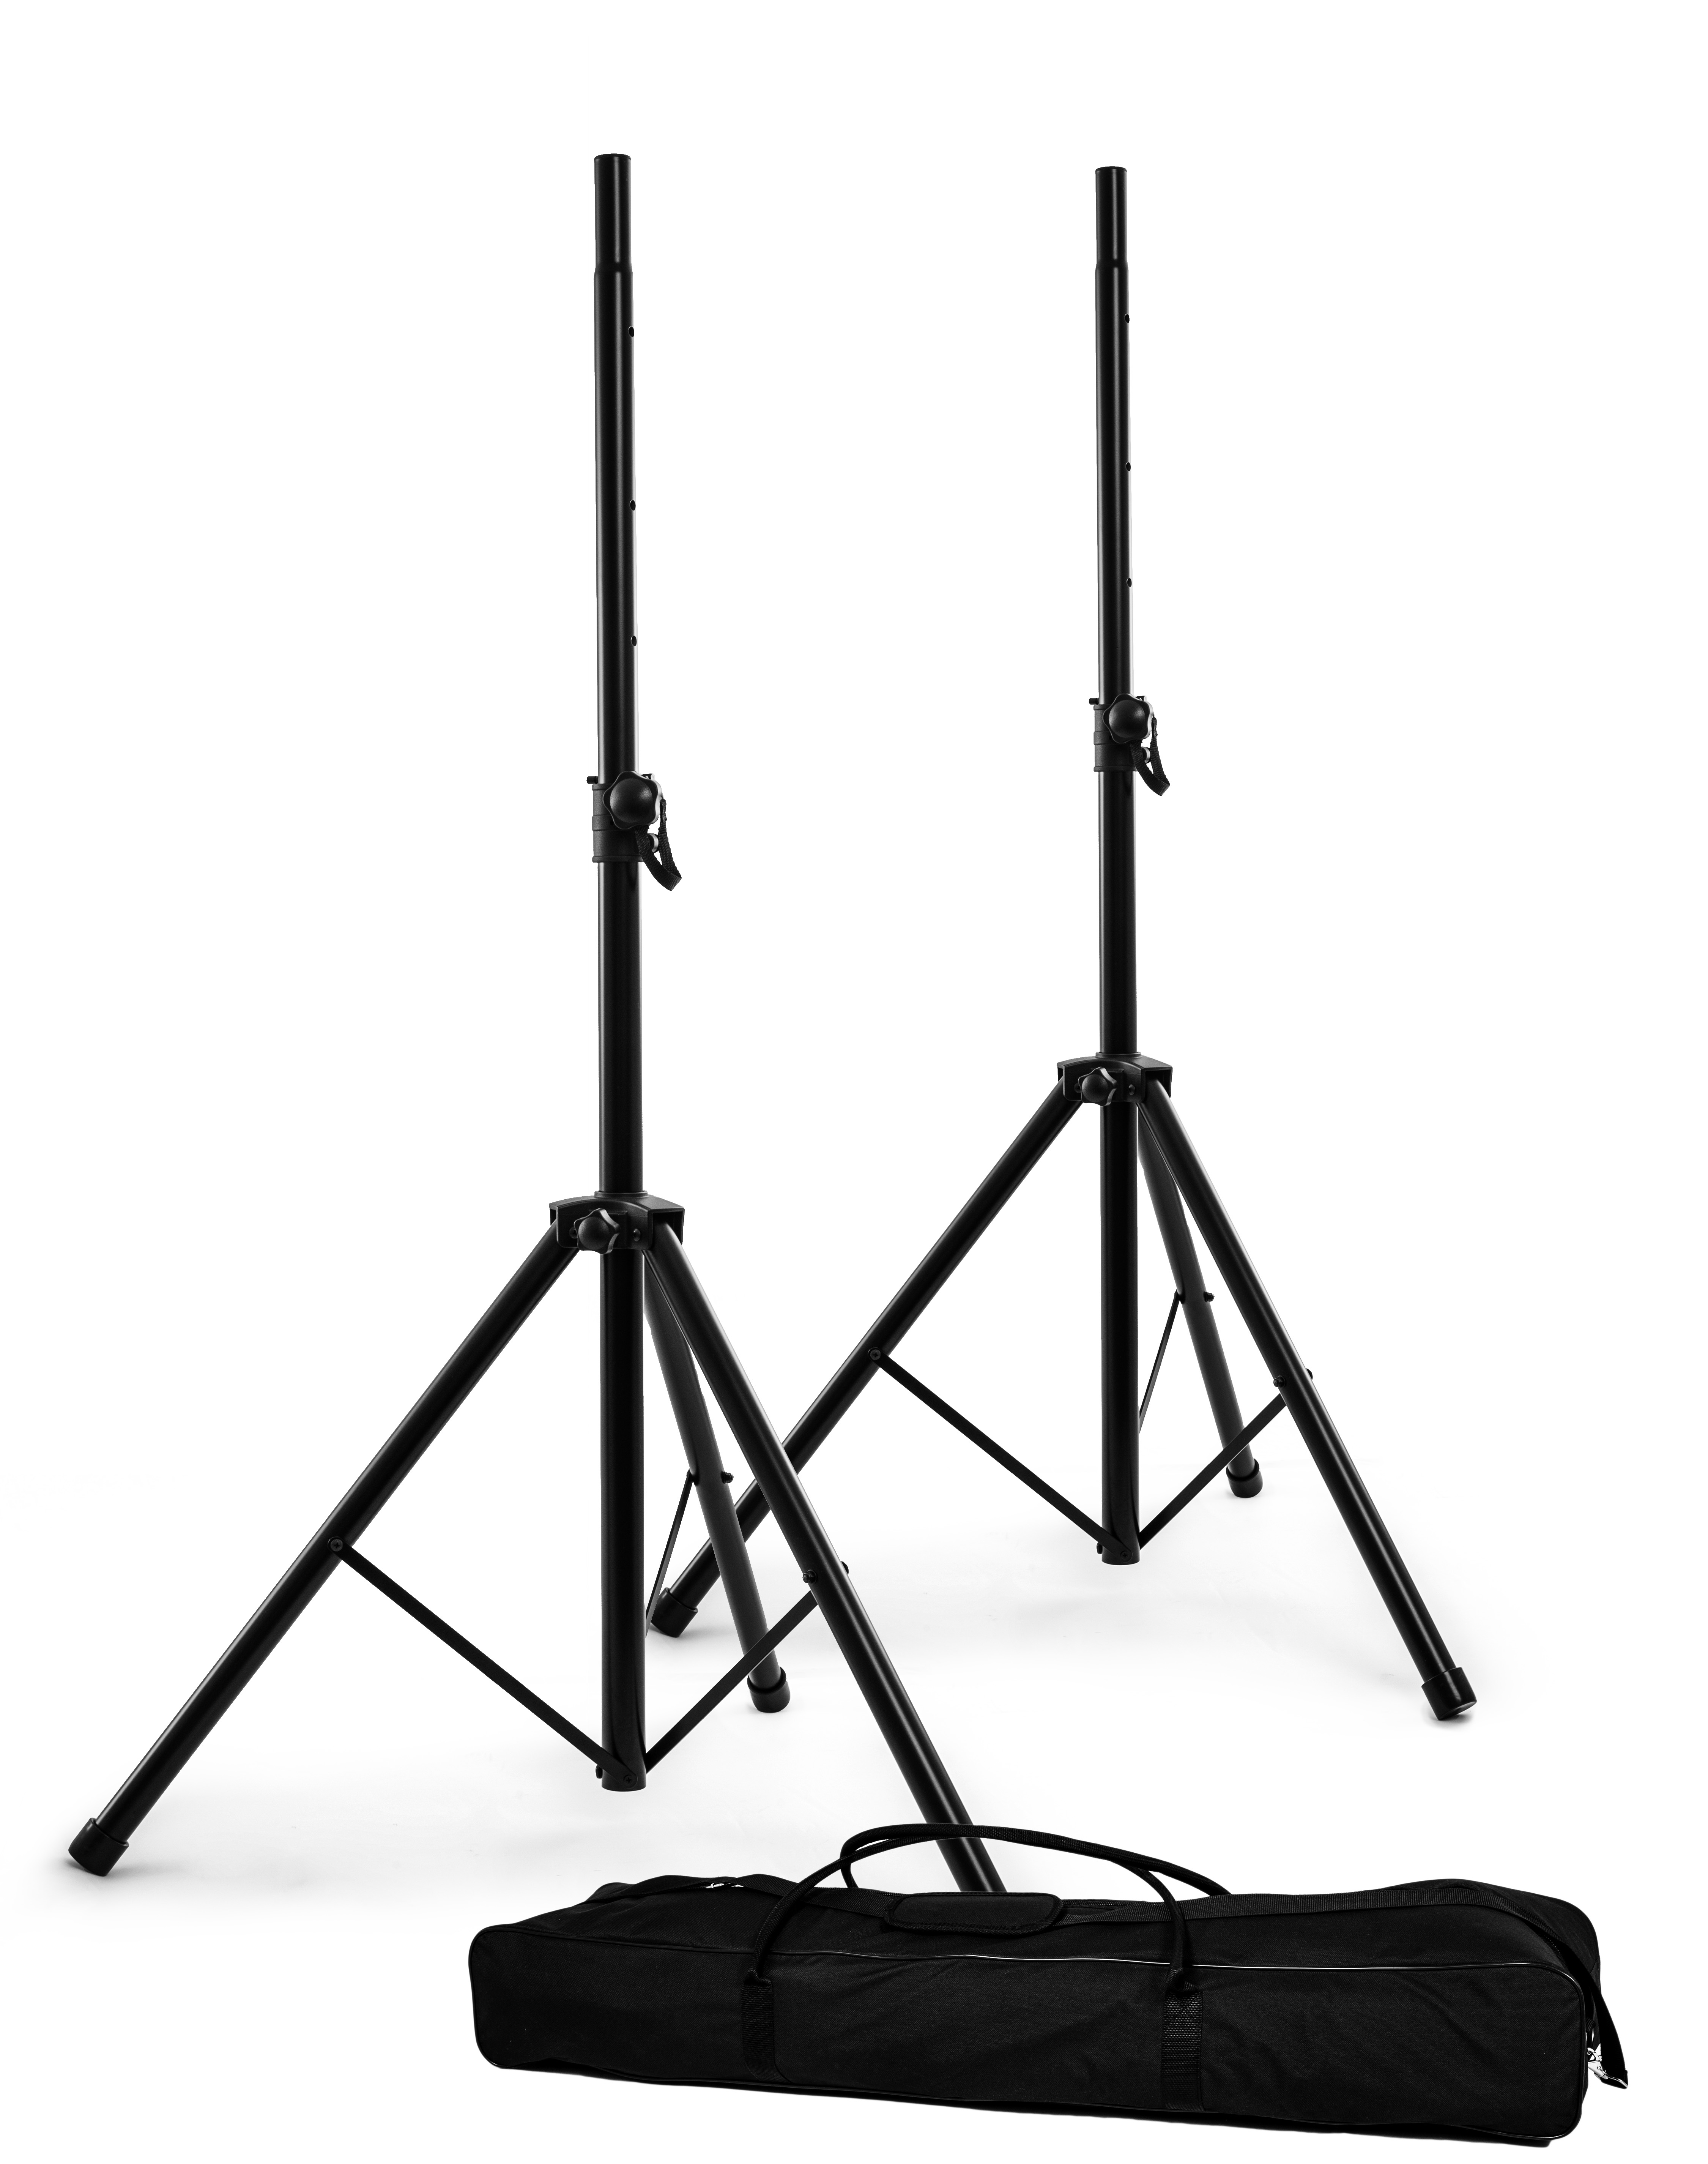 Nomad NSS-8033PK Speaker Stand Package